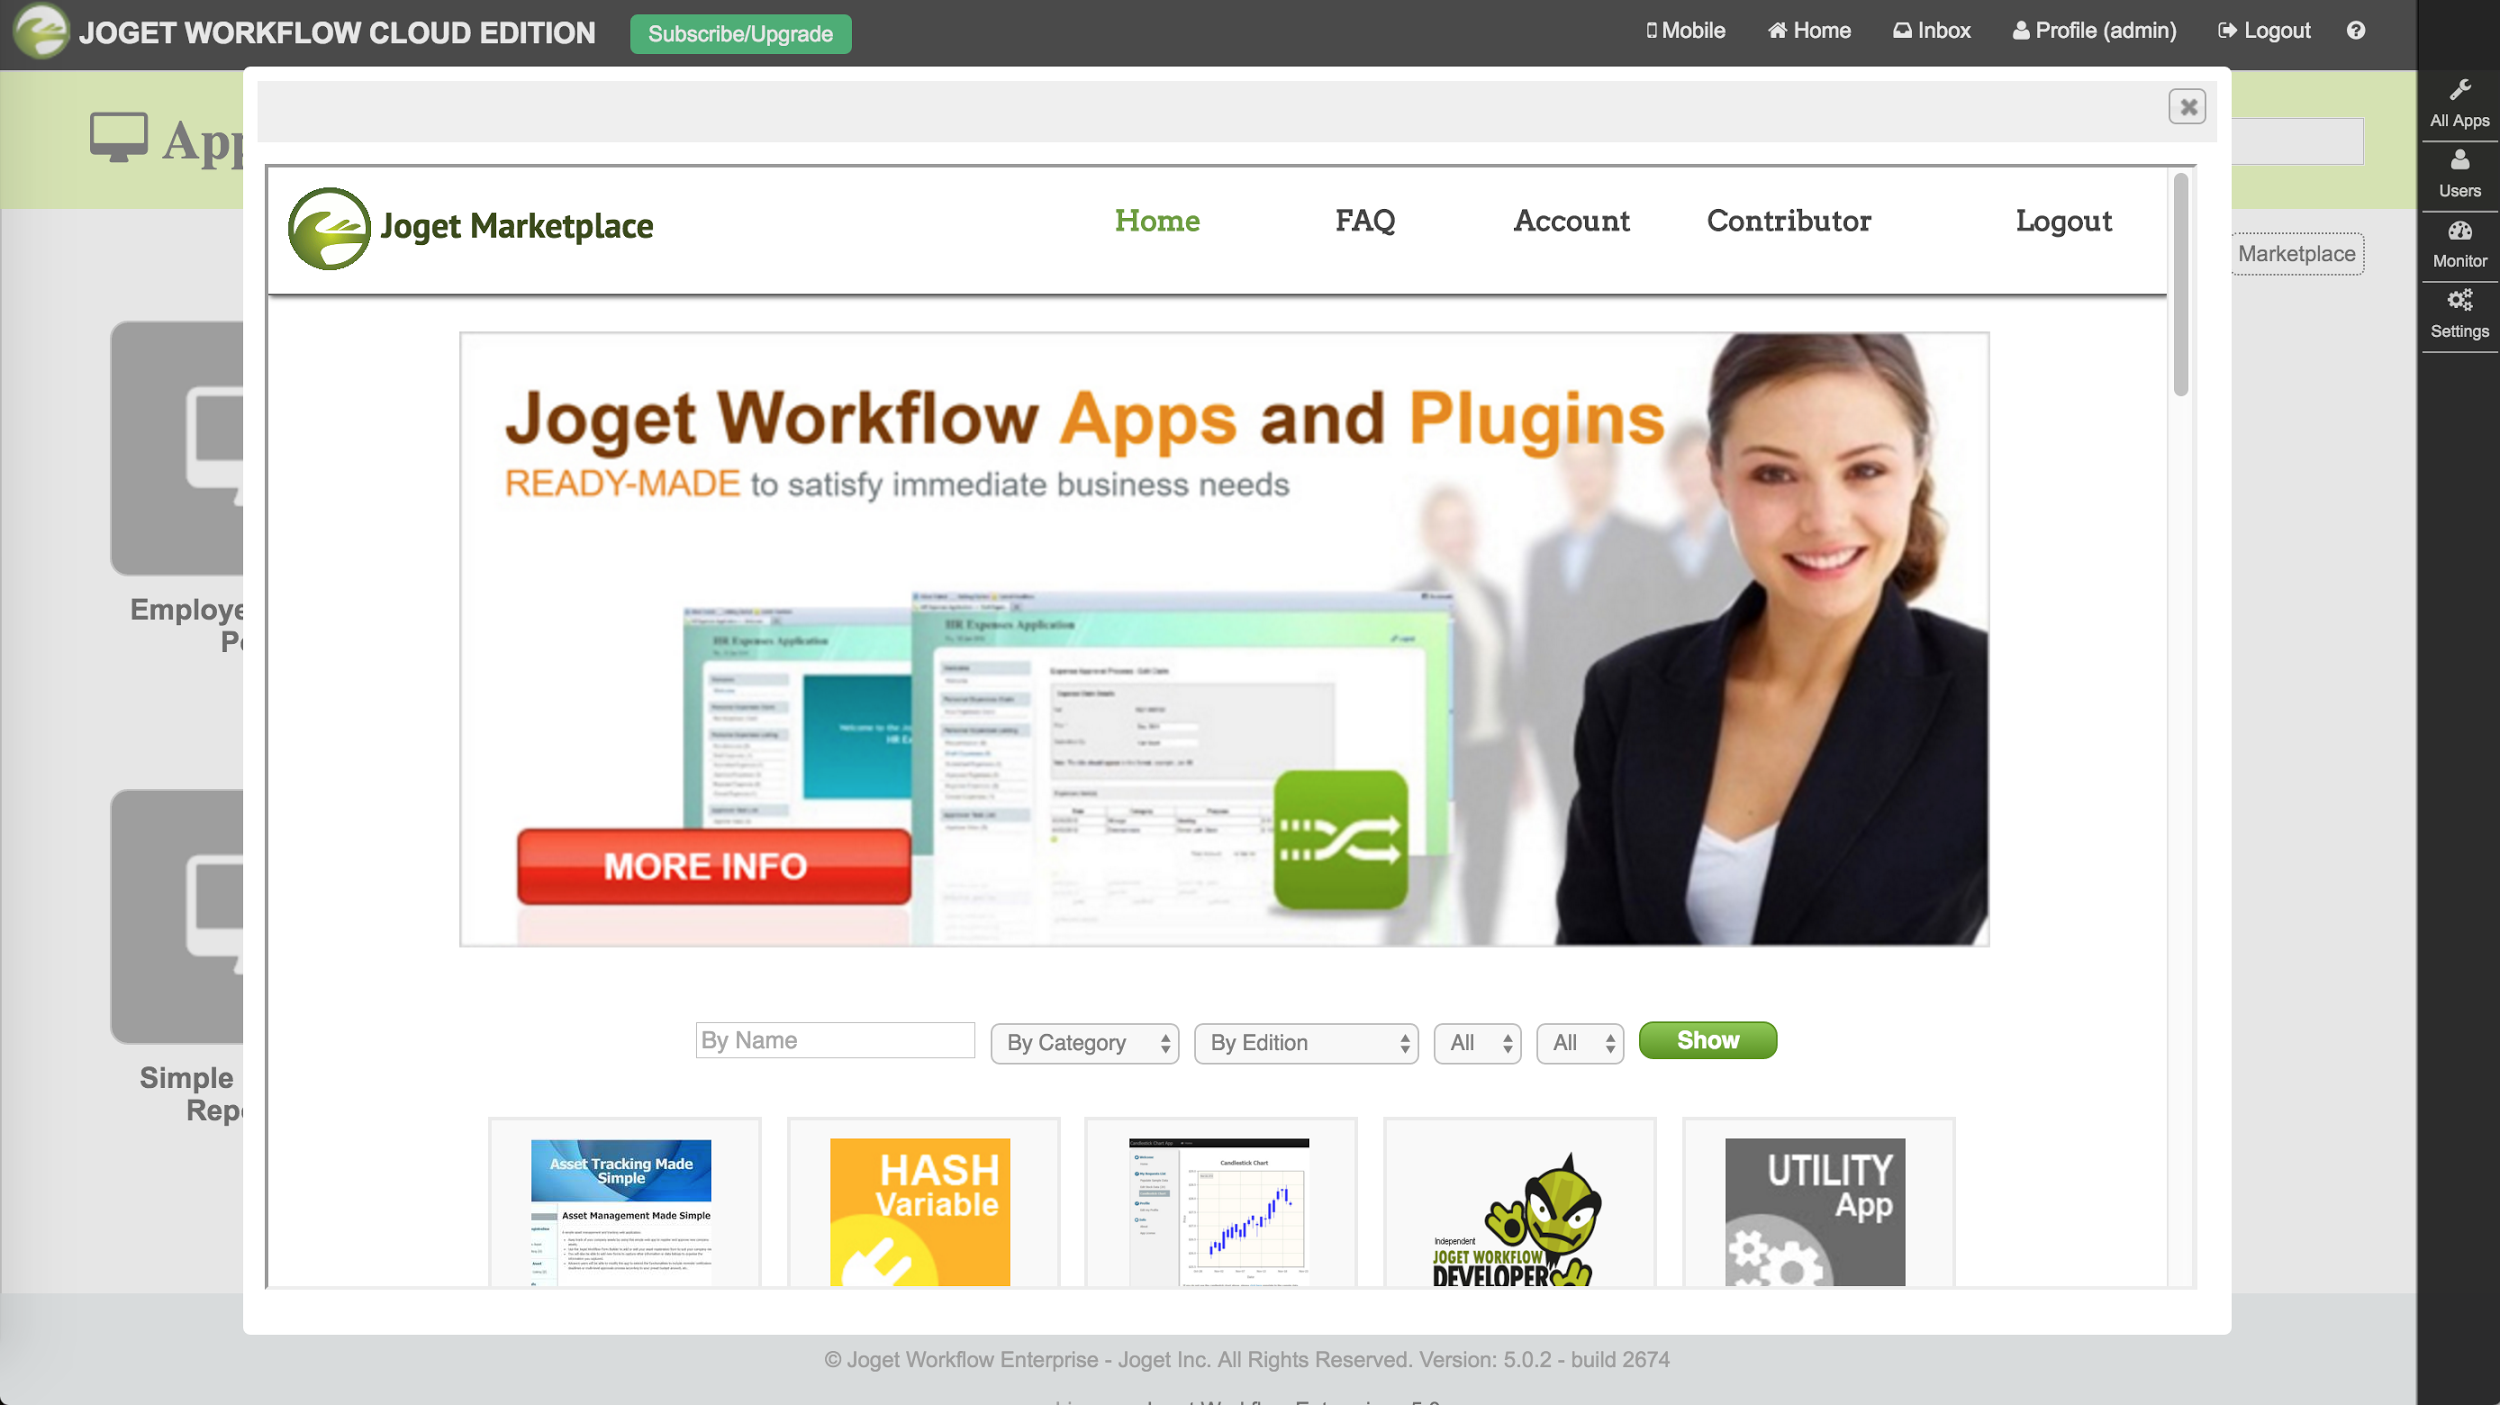 Joget Marketplace: Seamlessly install apps directly from the Joget Marketplace.